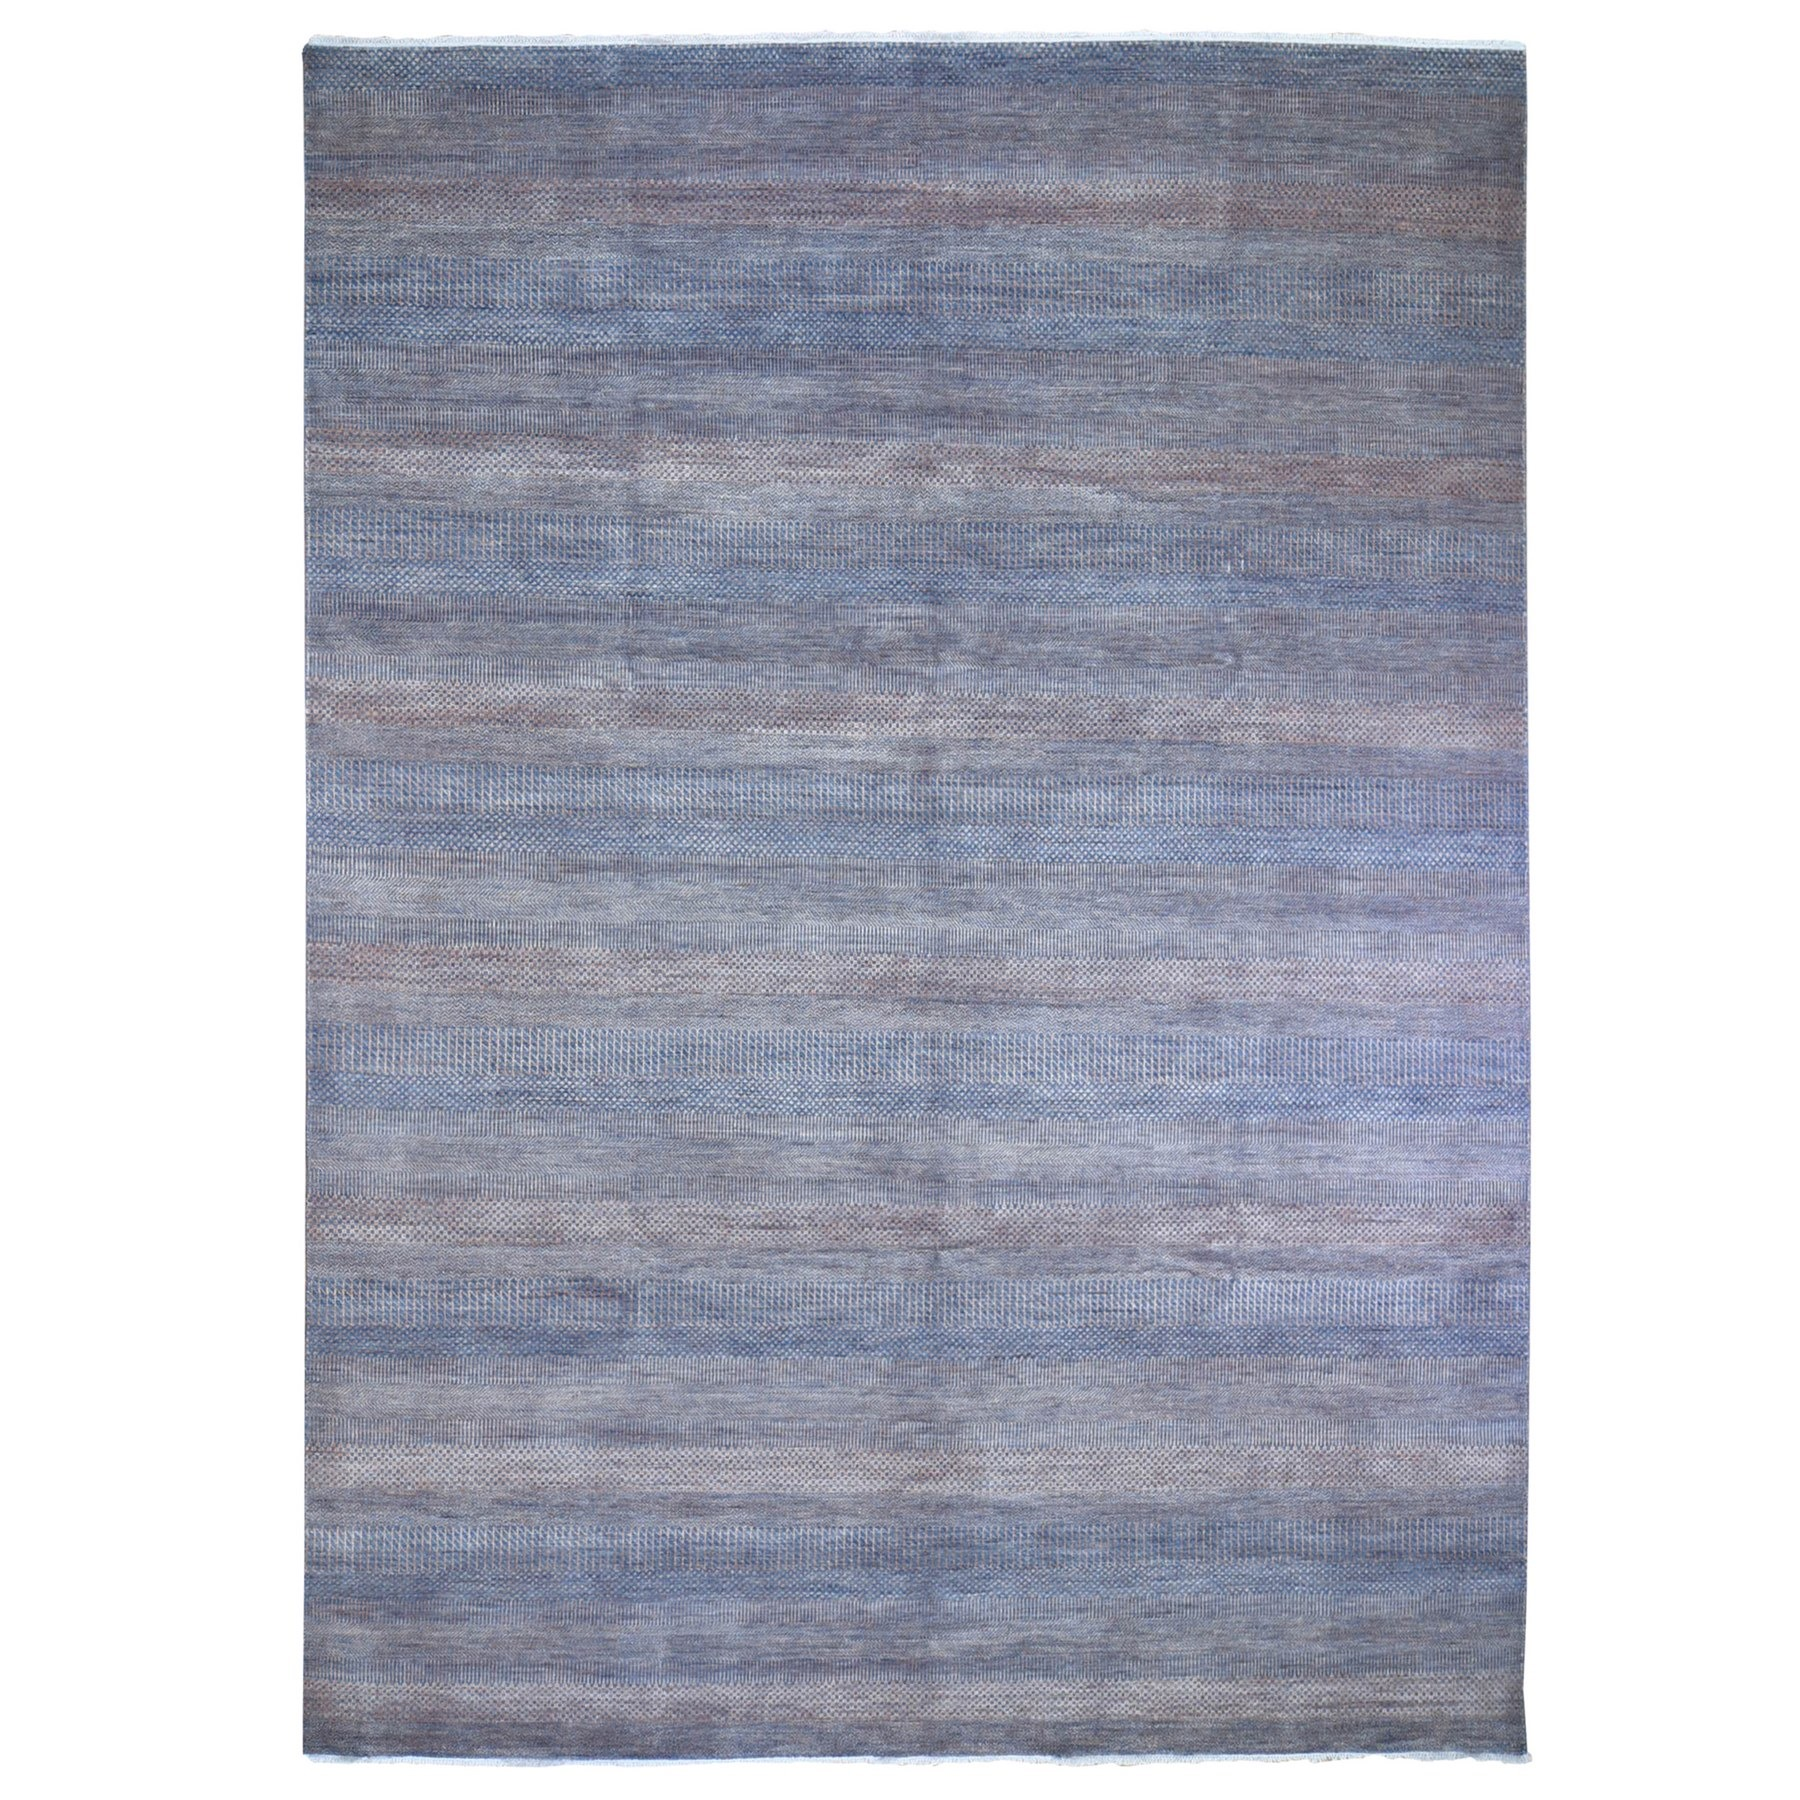 "9'1""x12'2"" Denim Blue with Touches of Orange Grass Design Wool and Silk Hand Knotted Oriental Rug"